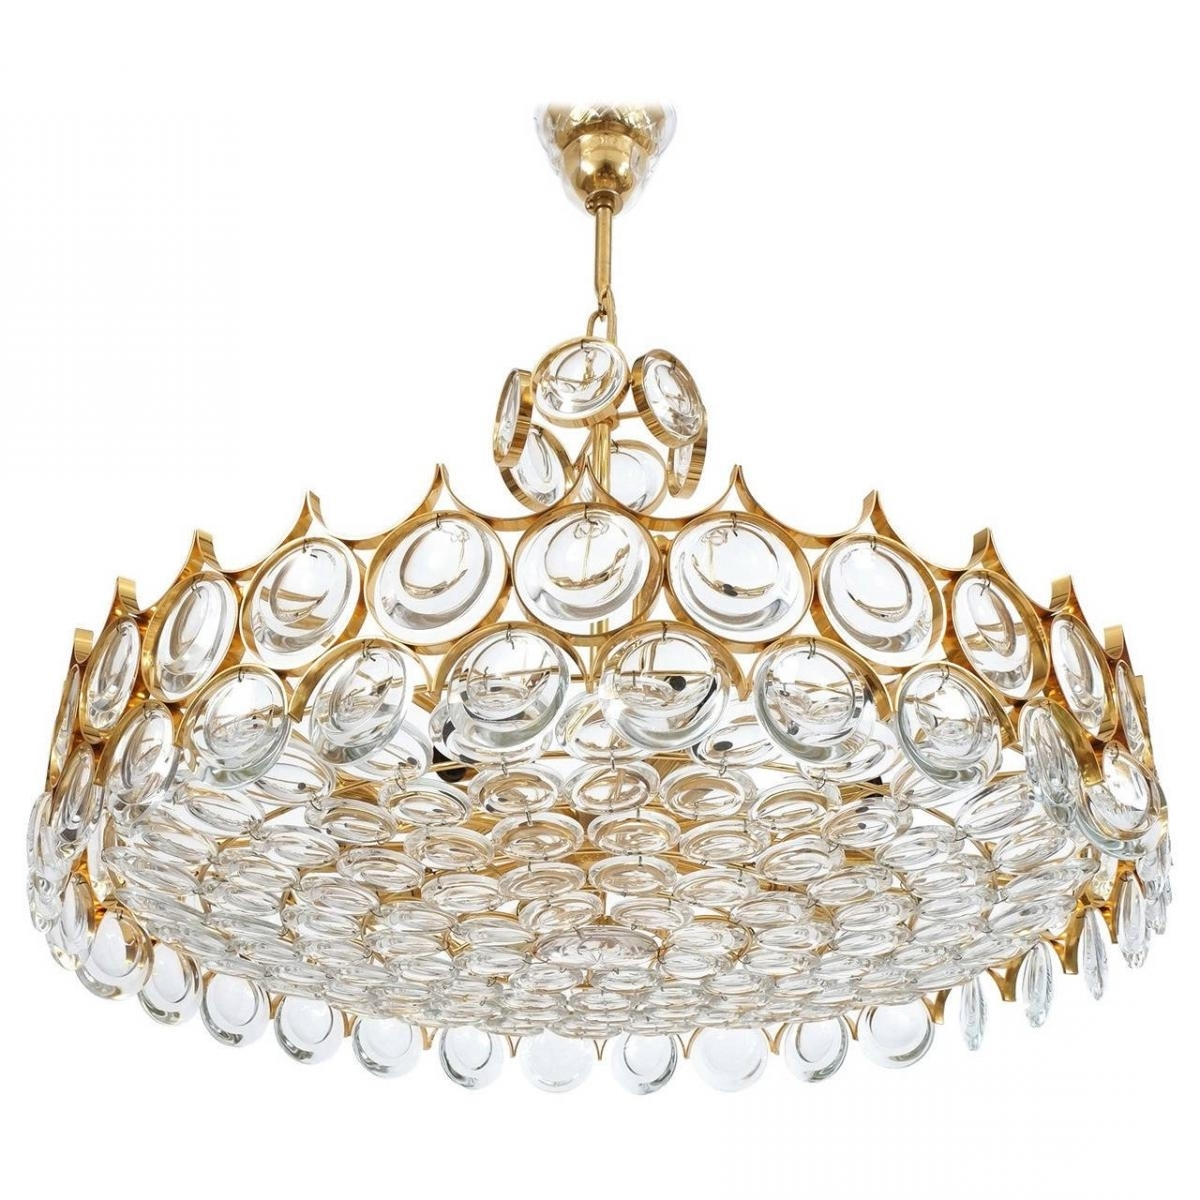 Widely Used Vintage Large Gilded Brass And Glass Chandelierpalwa For Sale At With Regard To Brass And Glass Chandelier (View 20 of 20)